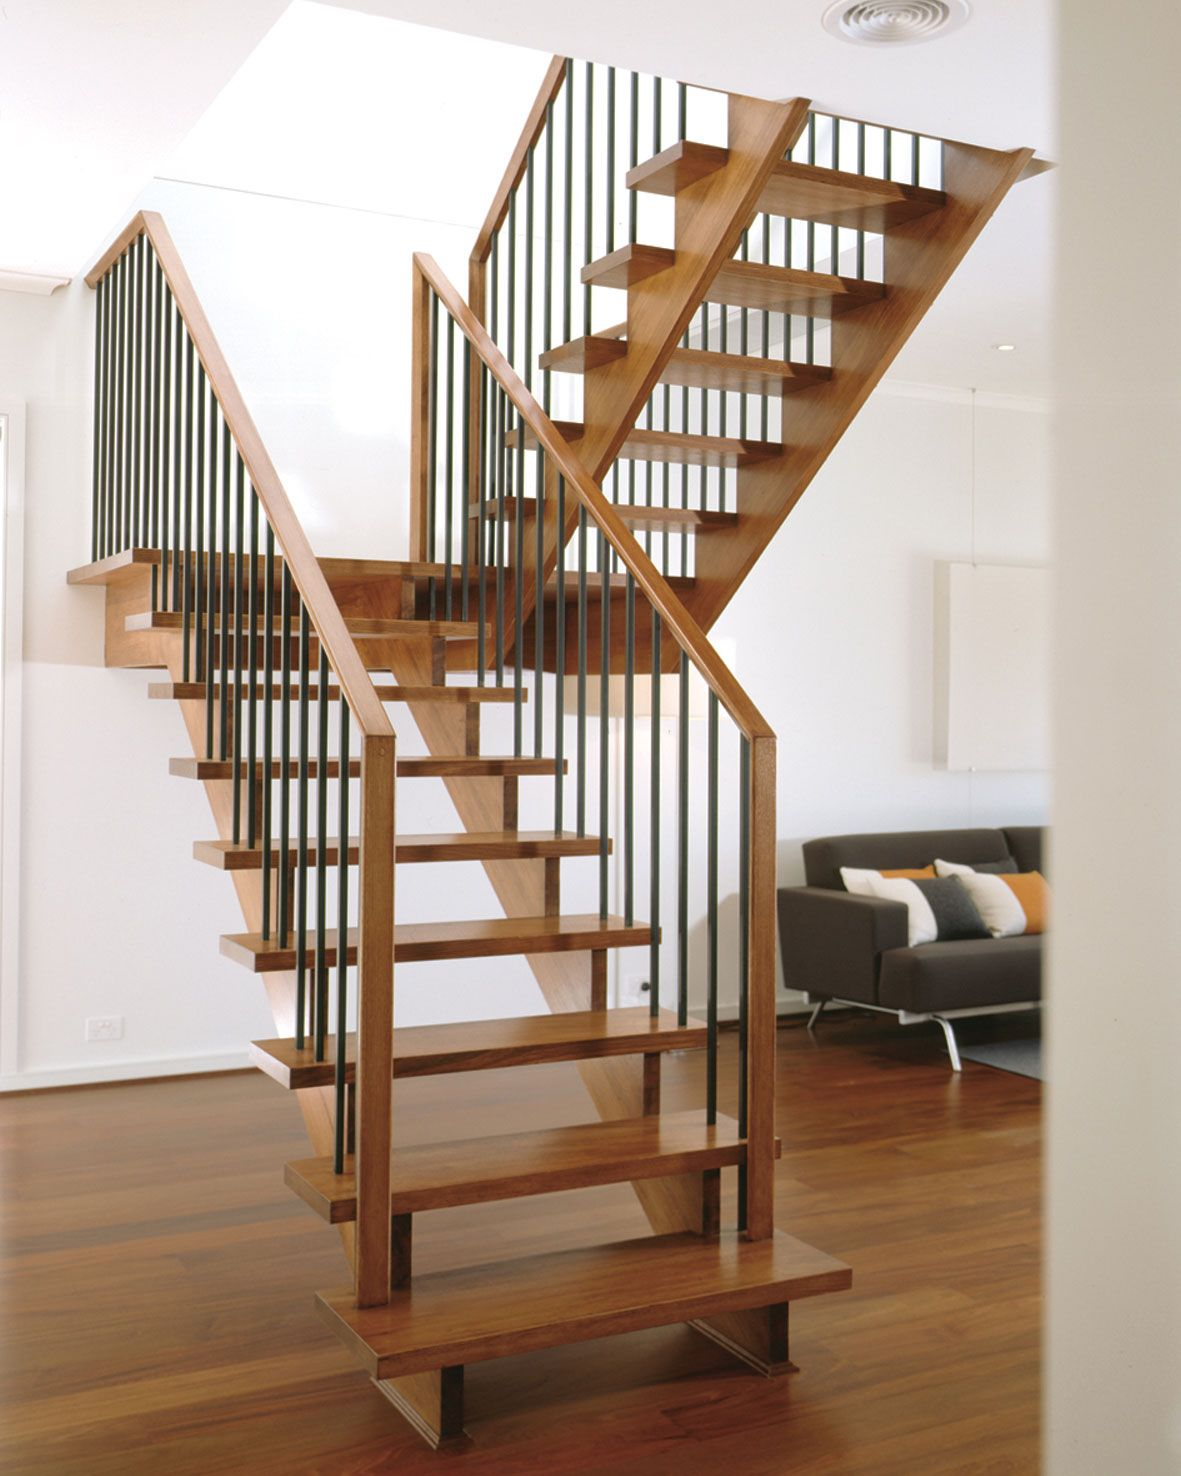 Stunning staircase designs in home interior with wooden for Interior staircase designs